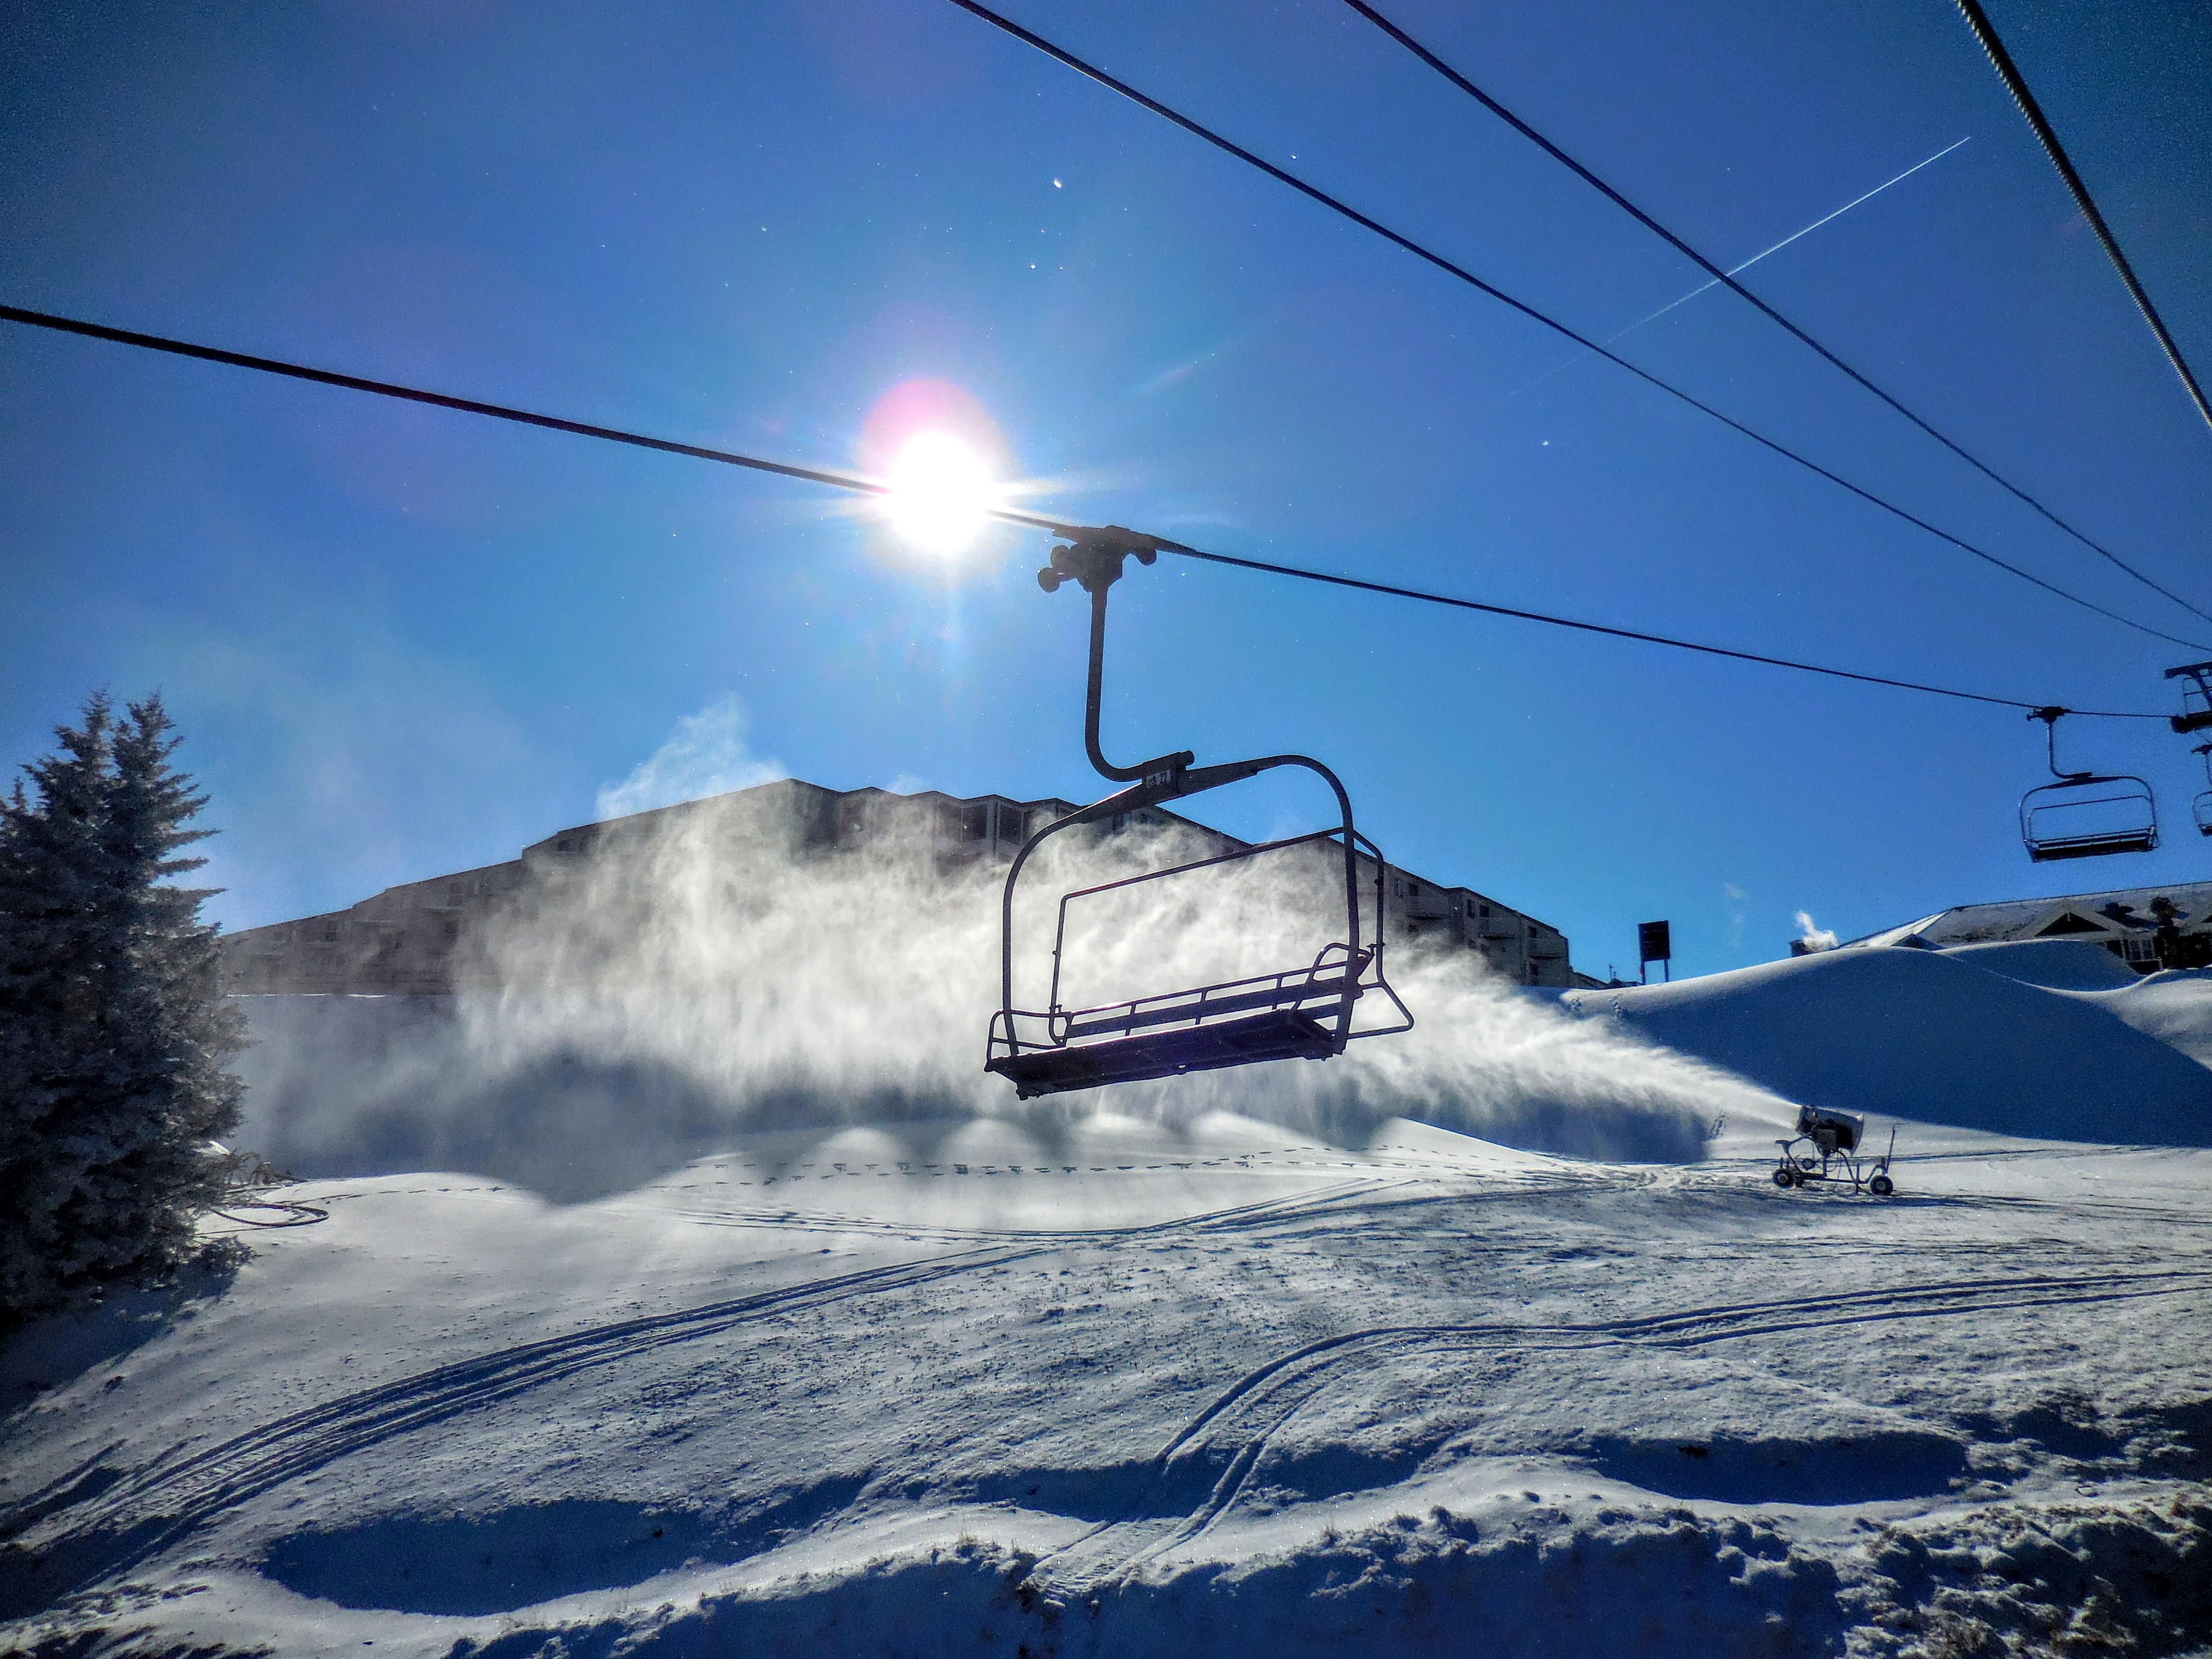 The Ballhooter high-speed chairlift is only steps away from ML356!